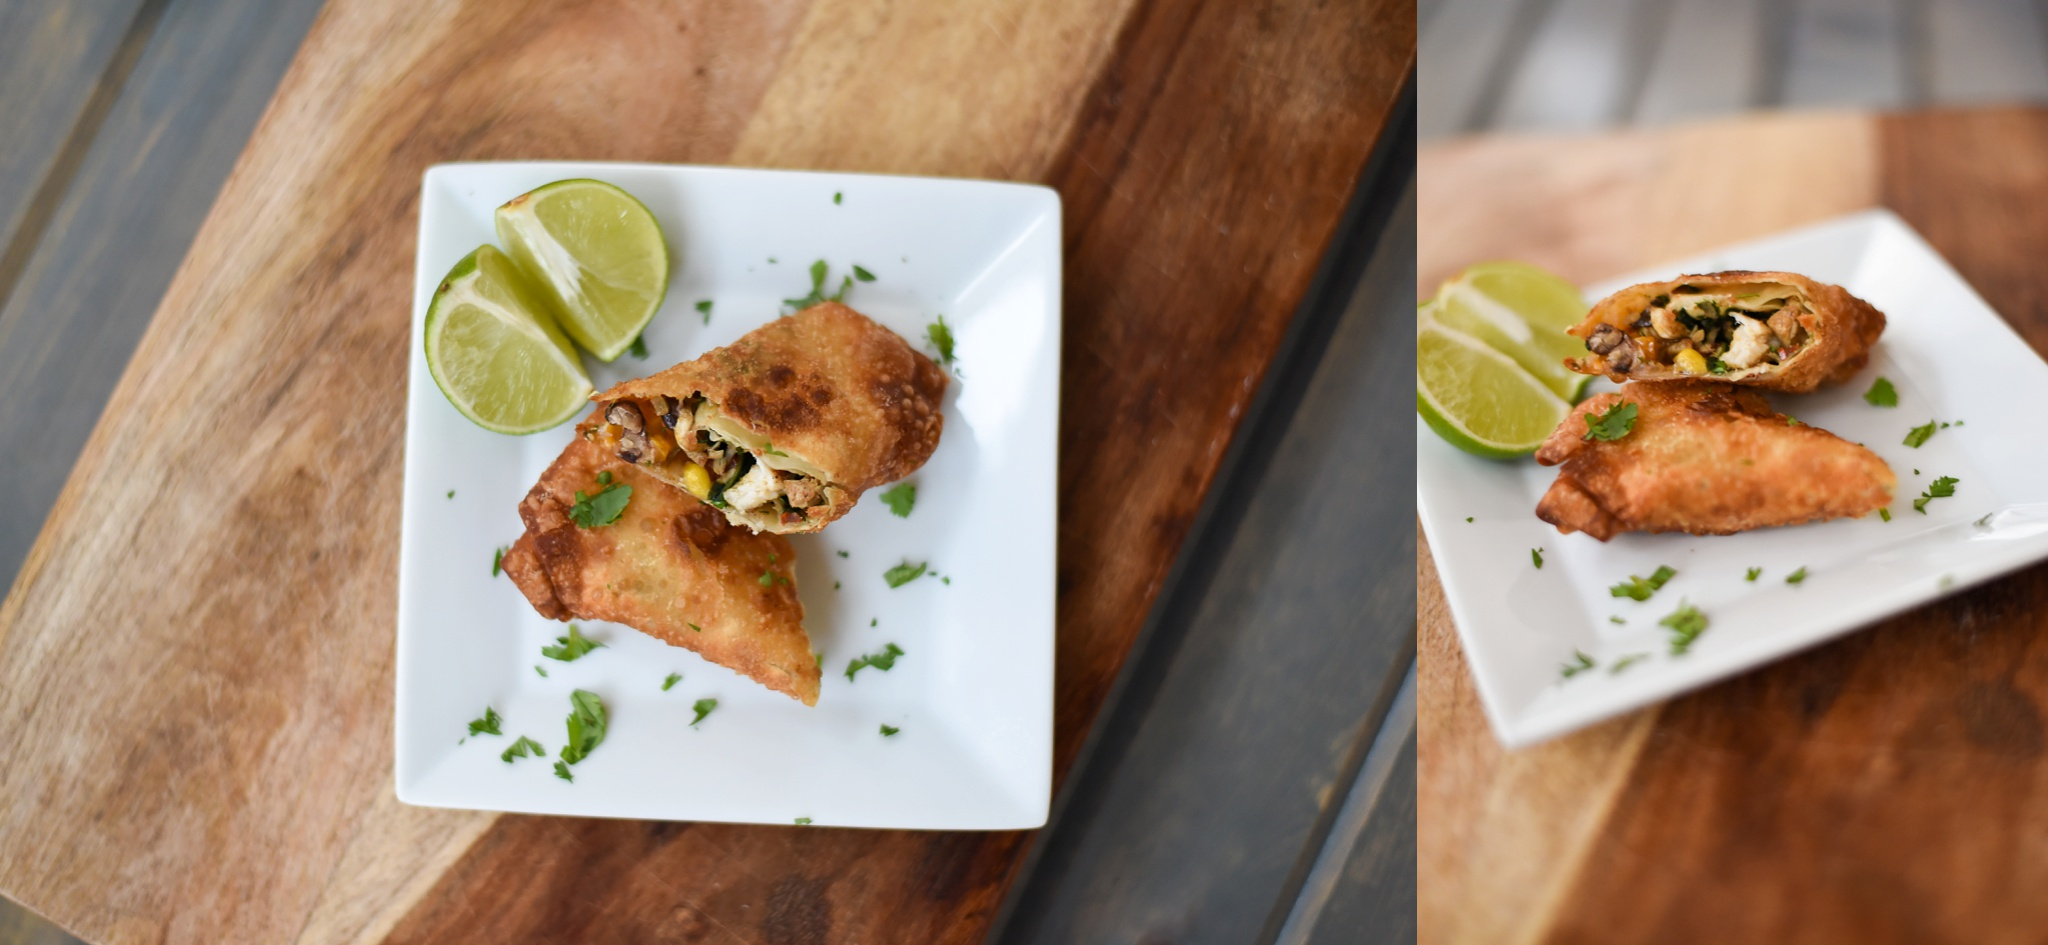 Your favorite restaurant appetizer can now be made at home. Enjoy my Southwestern Eggrolls full of flavor complete with the perfect crunch. -- www.thenewmrsallen.com